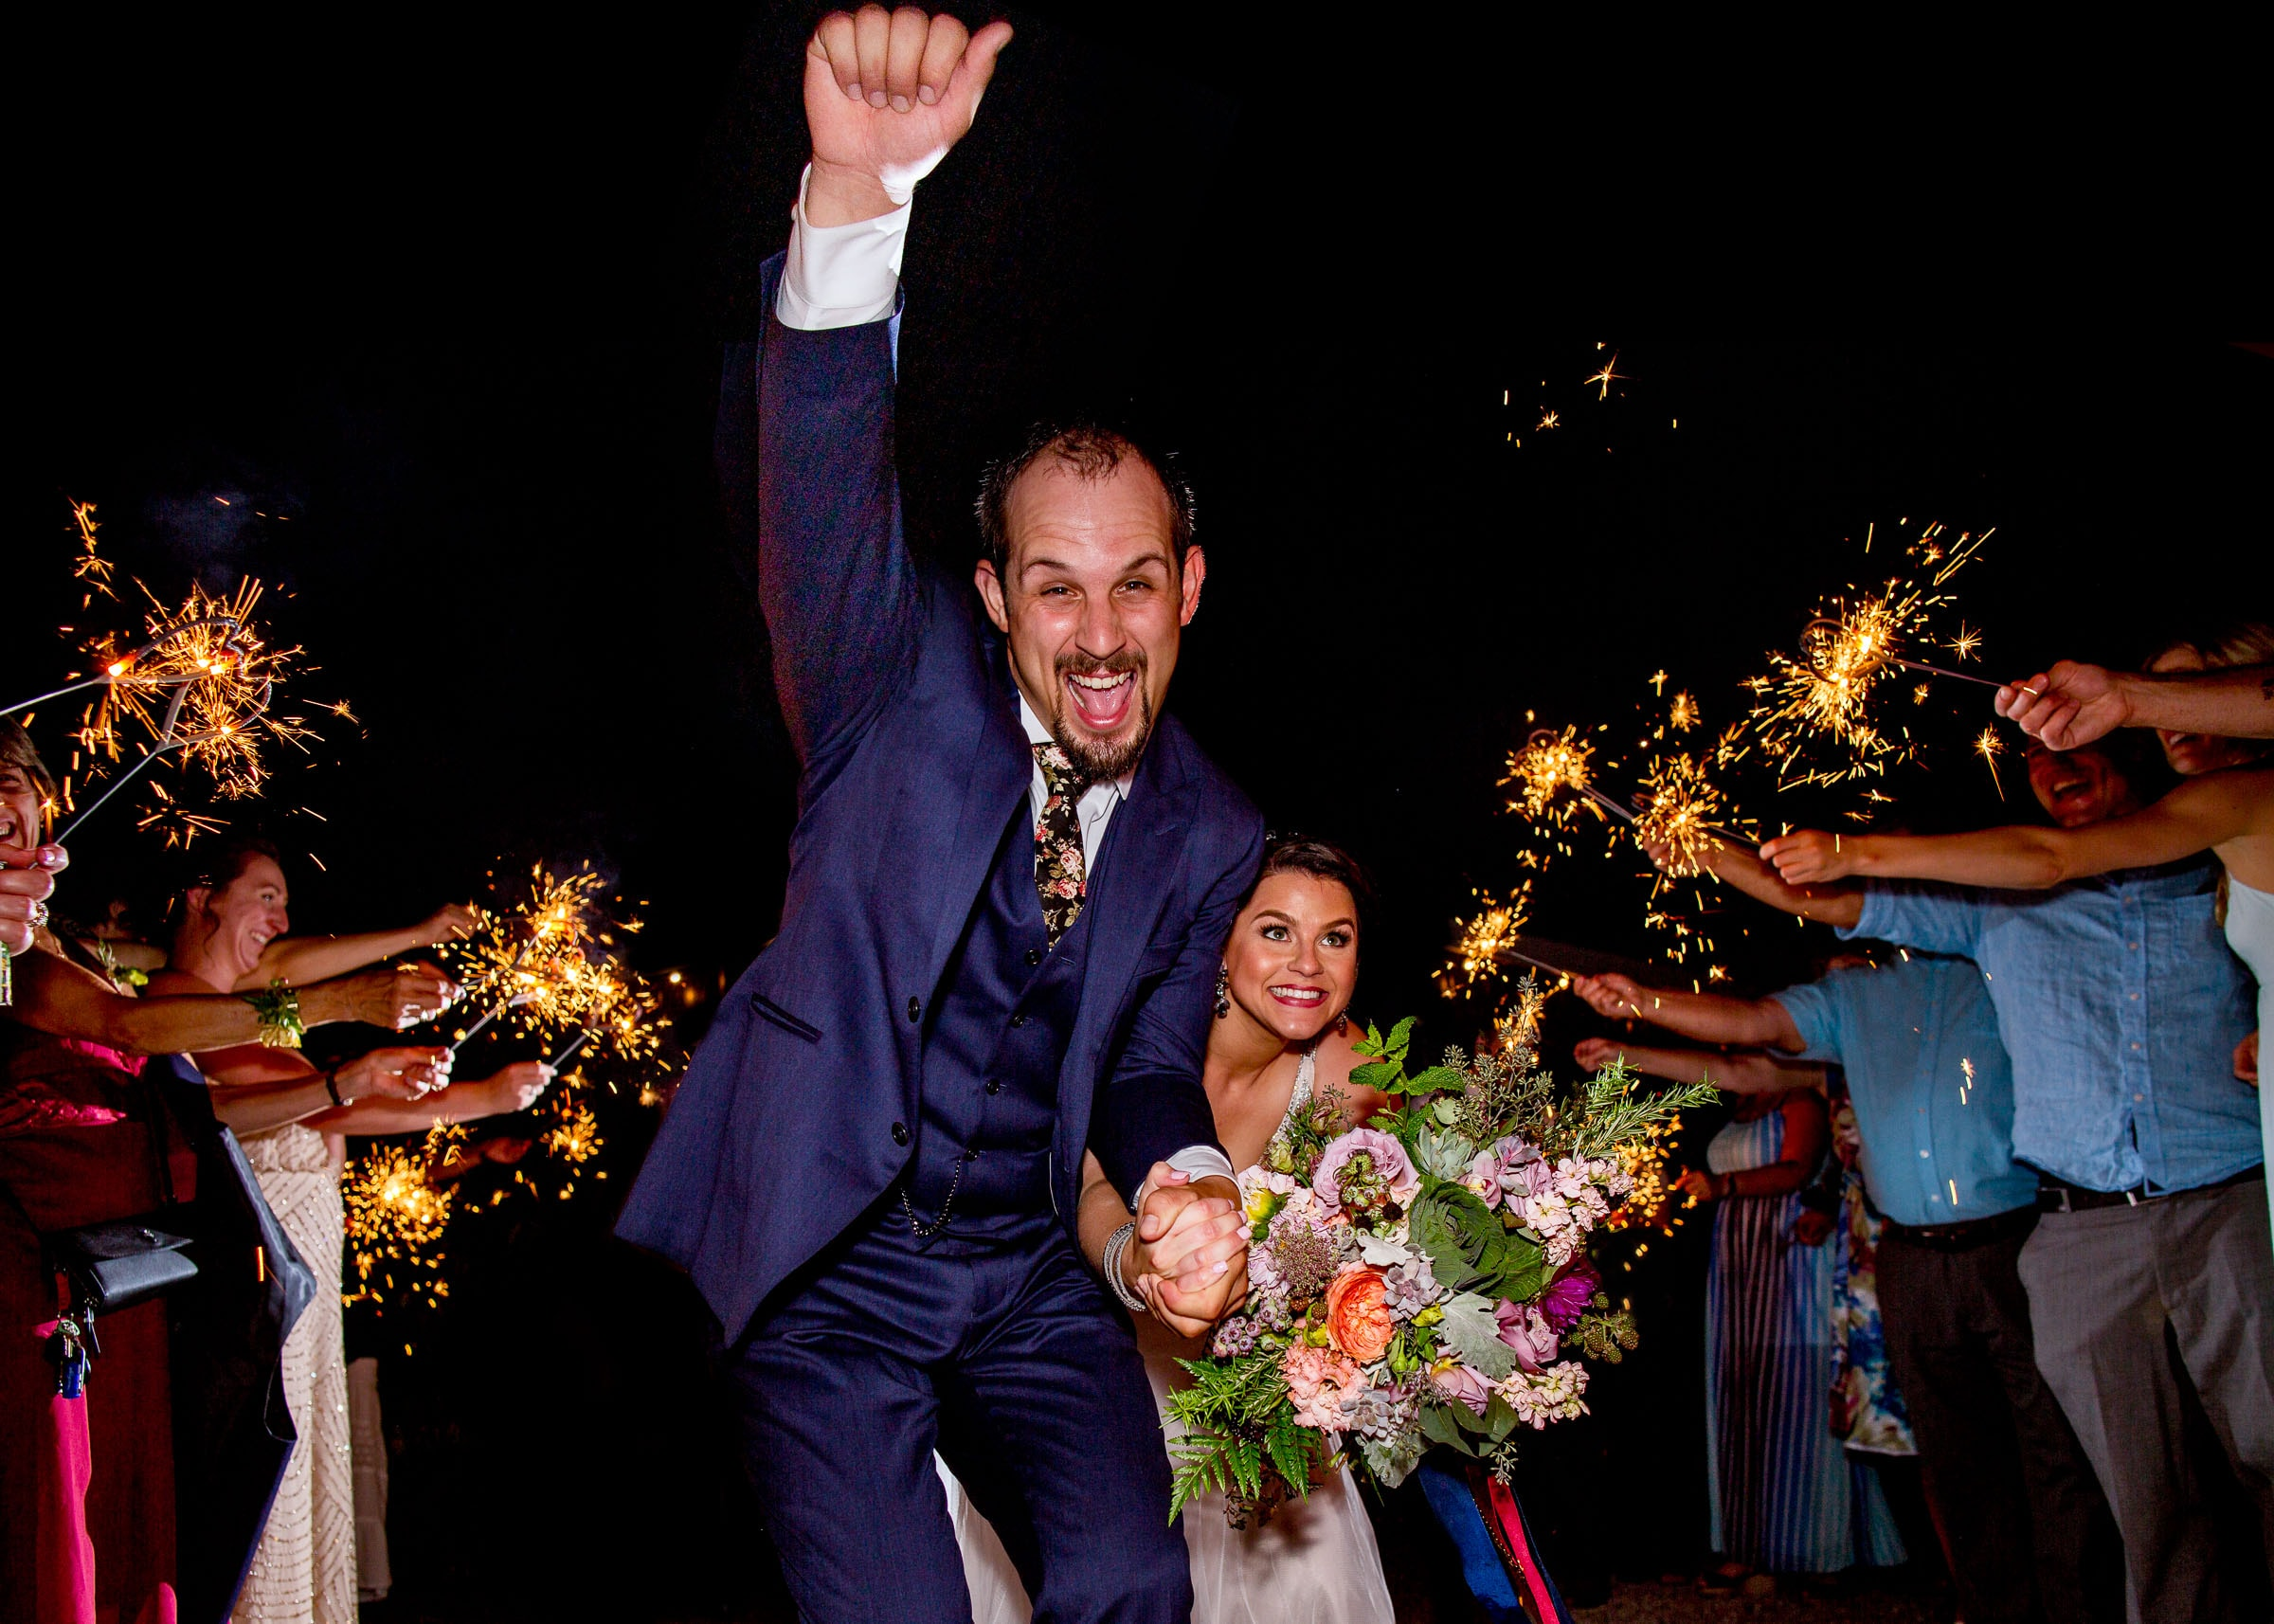 A bride and groom exiting with sparklers during their Postlewait's Country wedding located in the heart of the Willamette Valley between Portland and Salem near Aurora, Oregon